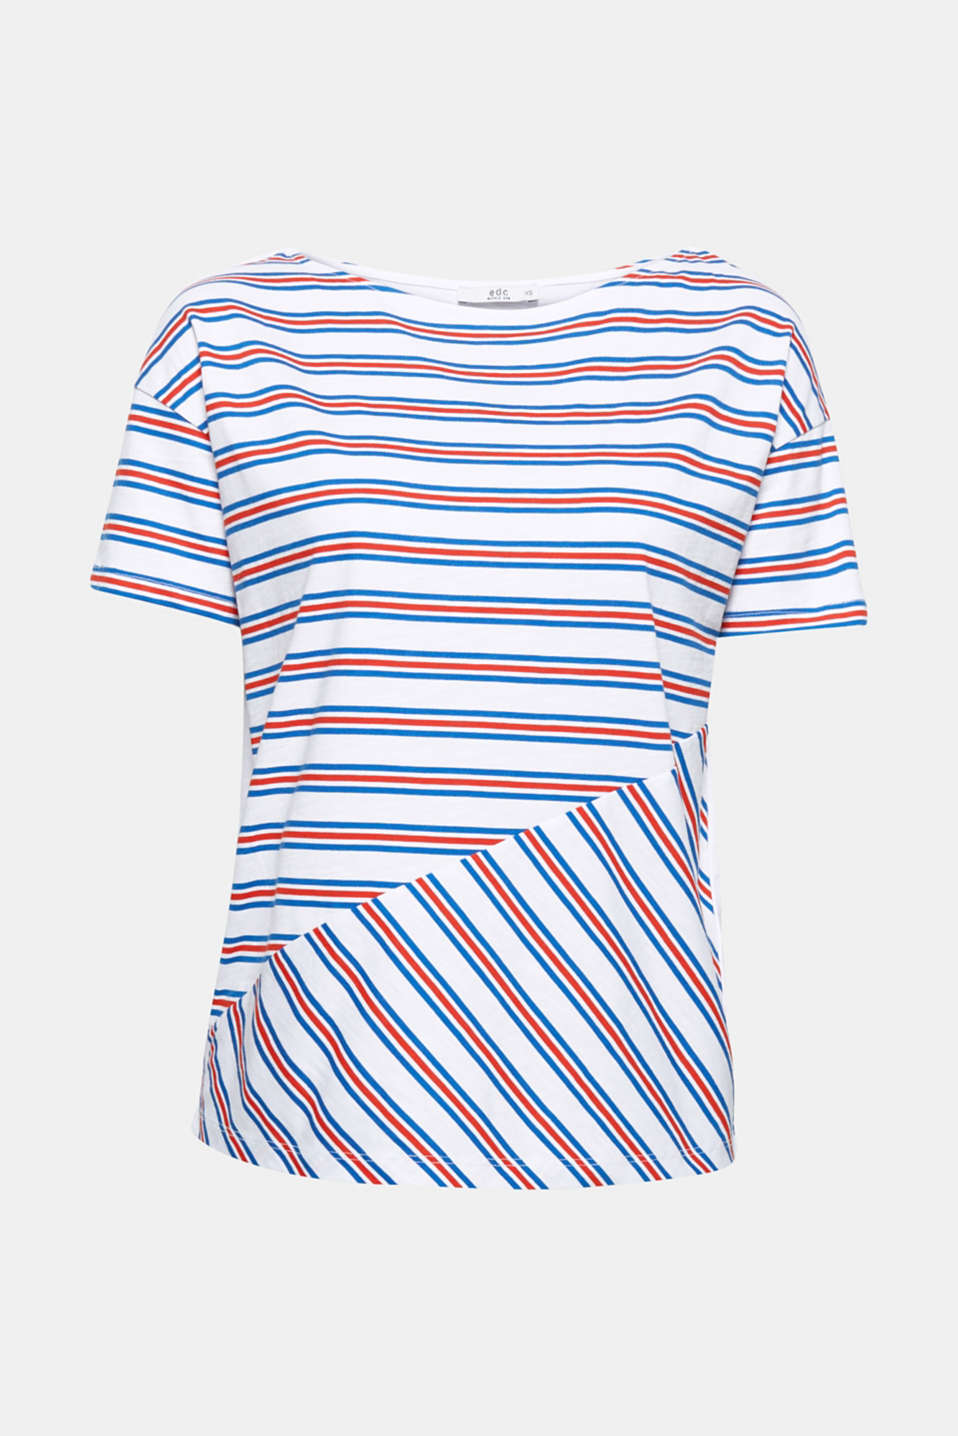 Scores points with the sophisticated graphic design and provides maximum comfort thanks to the pure cotton fabric: Straight cut T-shirt with a varied striped print.